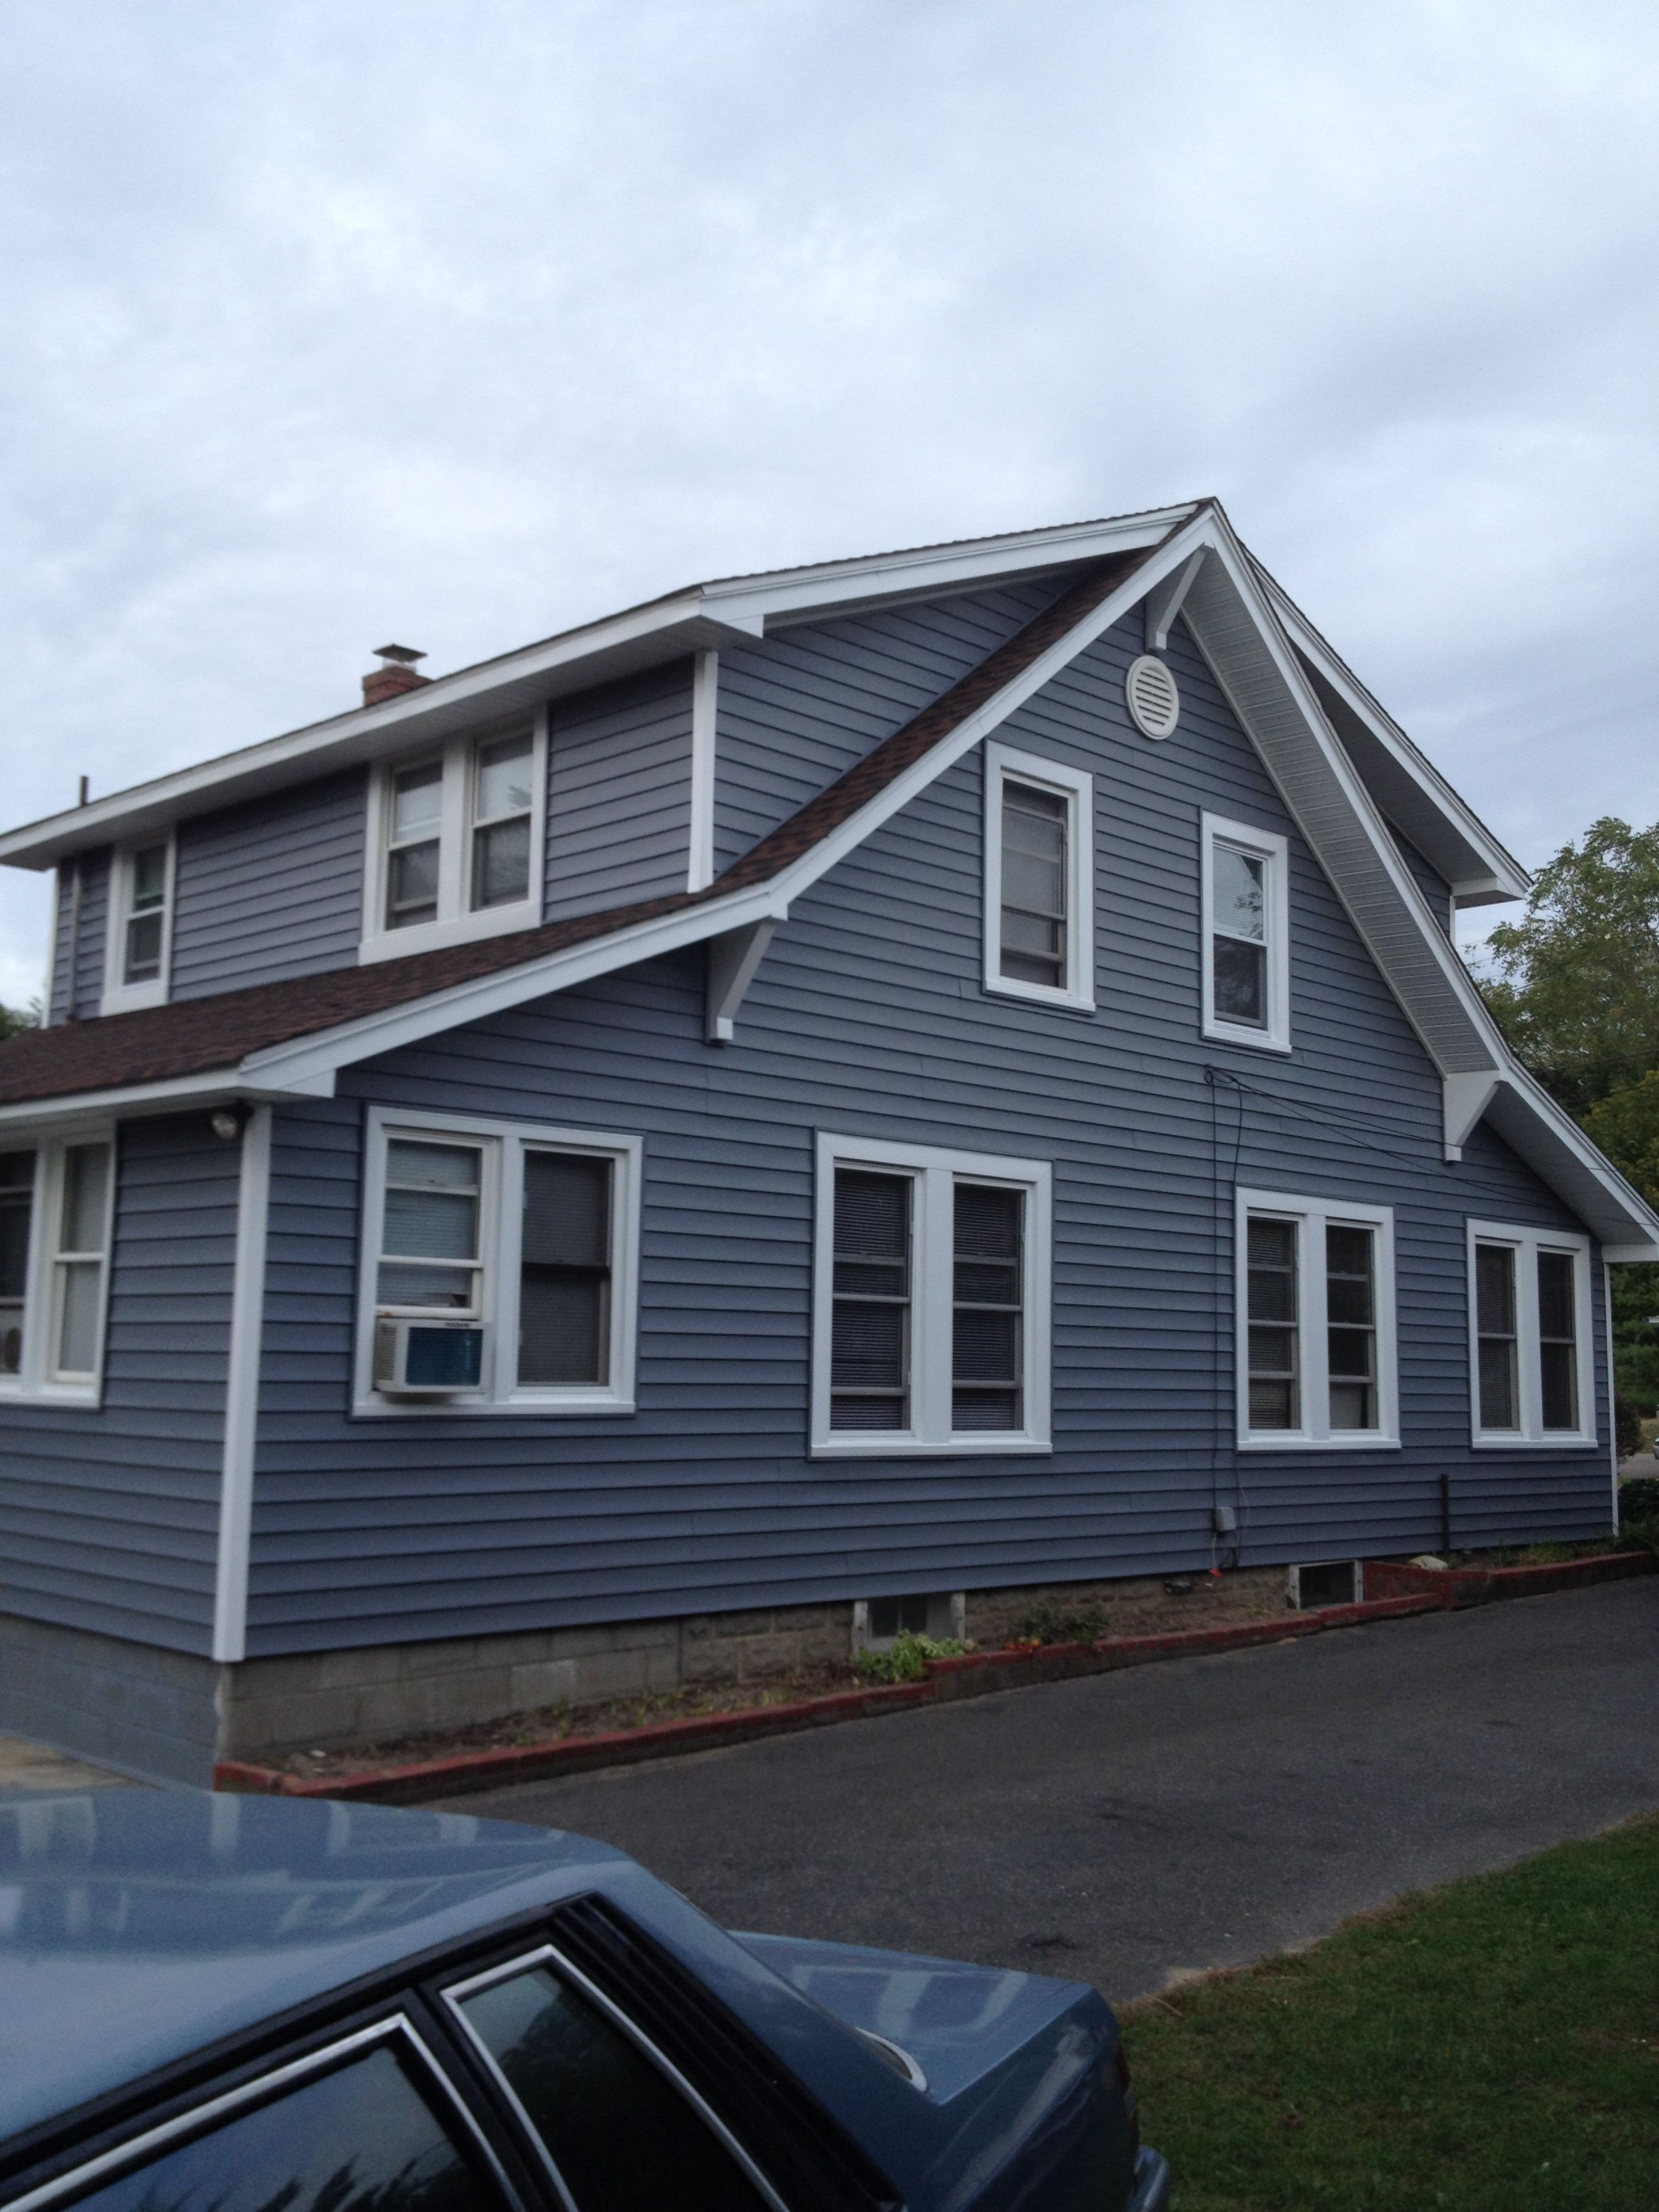 Certainteed Flagstone Color Siding With Custom Capped Windows By Ponceperfections Com Flagstone Vinyl Siding House Exterior Certainteed Vinyl Siding